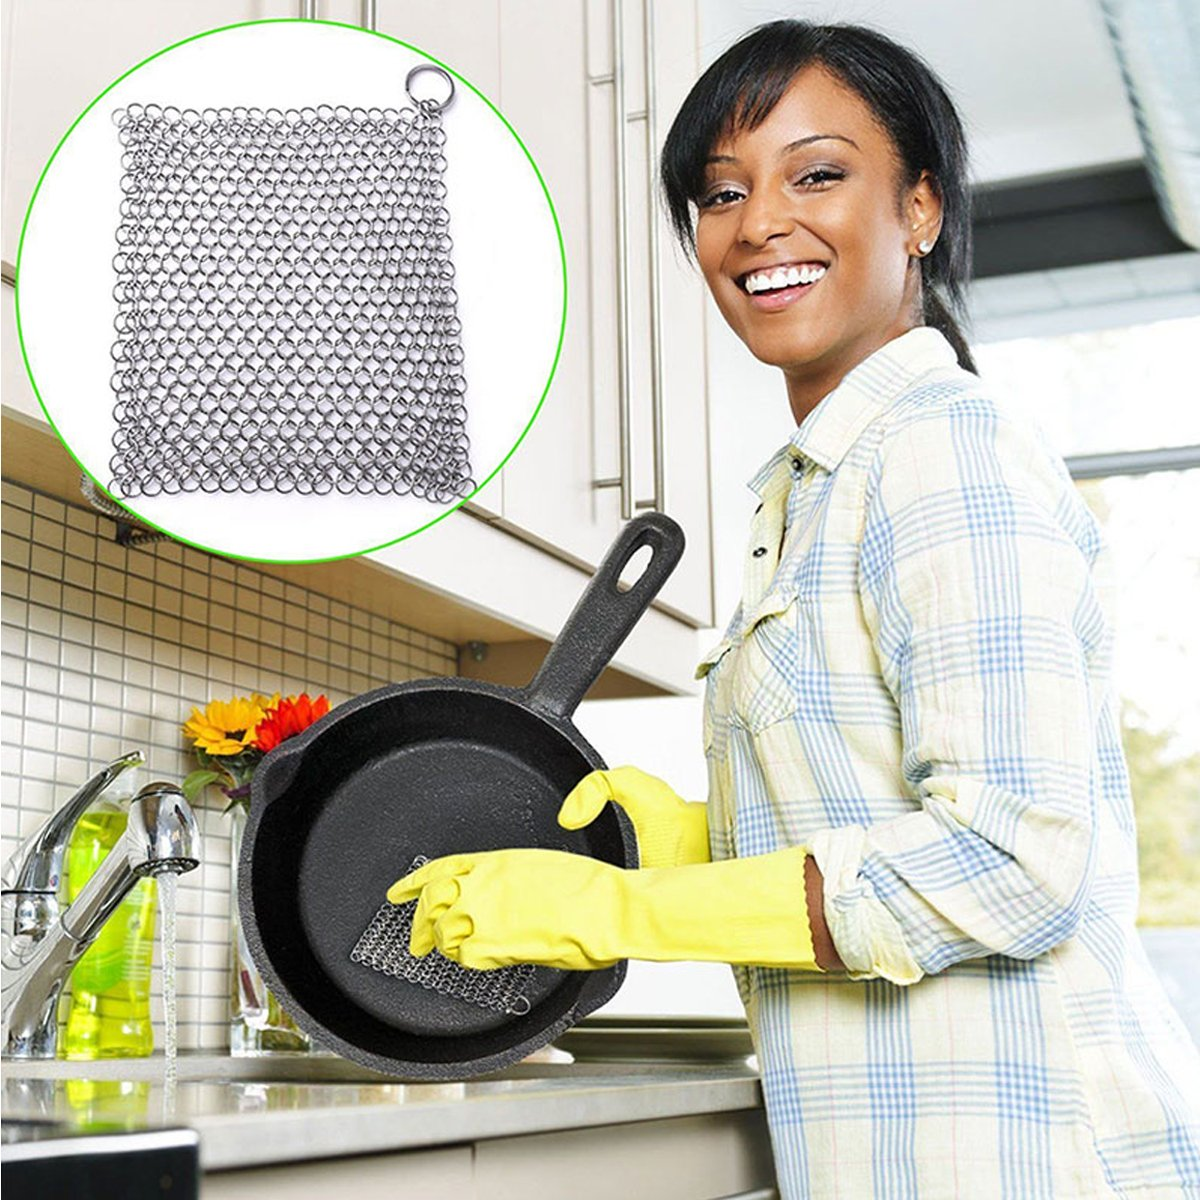 Stainless Steel Cast Iron Cleaner - 361 Stainless Steel Cast Iron Rings Cleaner Chainmail Scrubber for Kitchen Pre-Seasoned Pan Dutch Ovens Waffle Iron Pans Scraper Grill Skillet Scraper,XXL 8x8 Inch